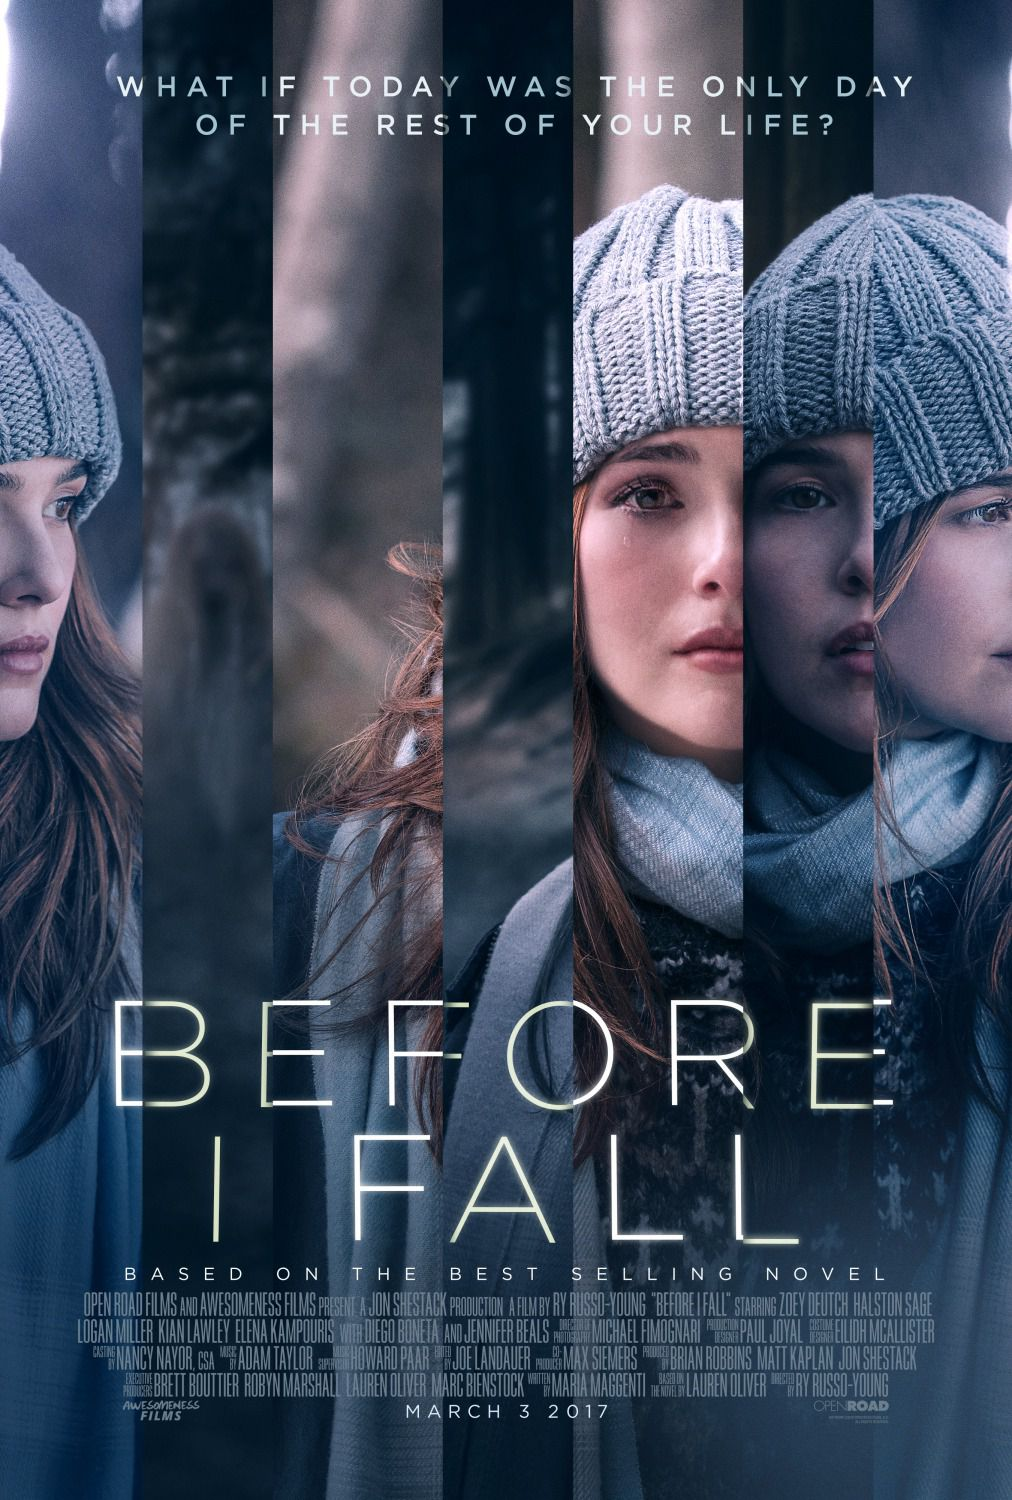 Before I Fall - Zoey Deutch - Halston Sage - Elena Kampouris - Logan Miller - film poster